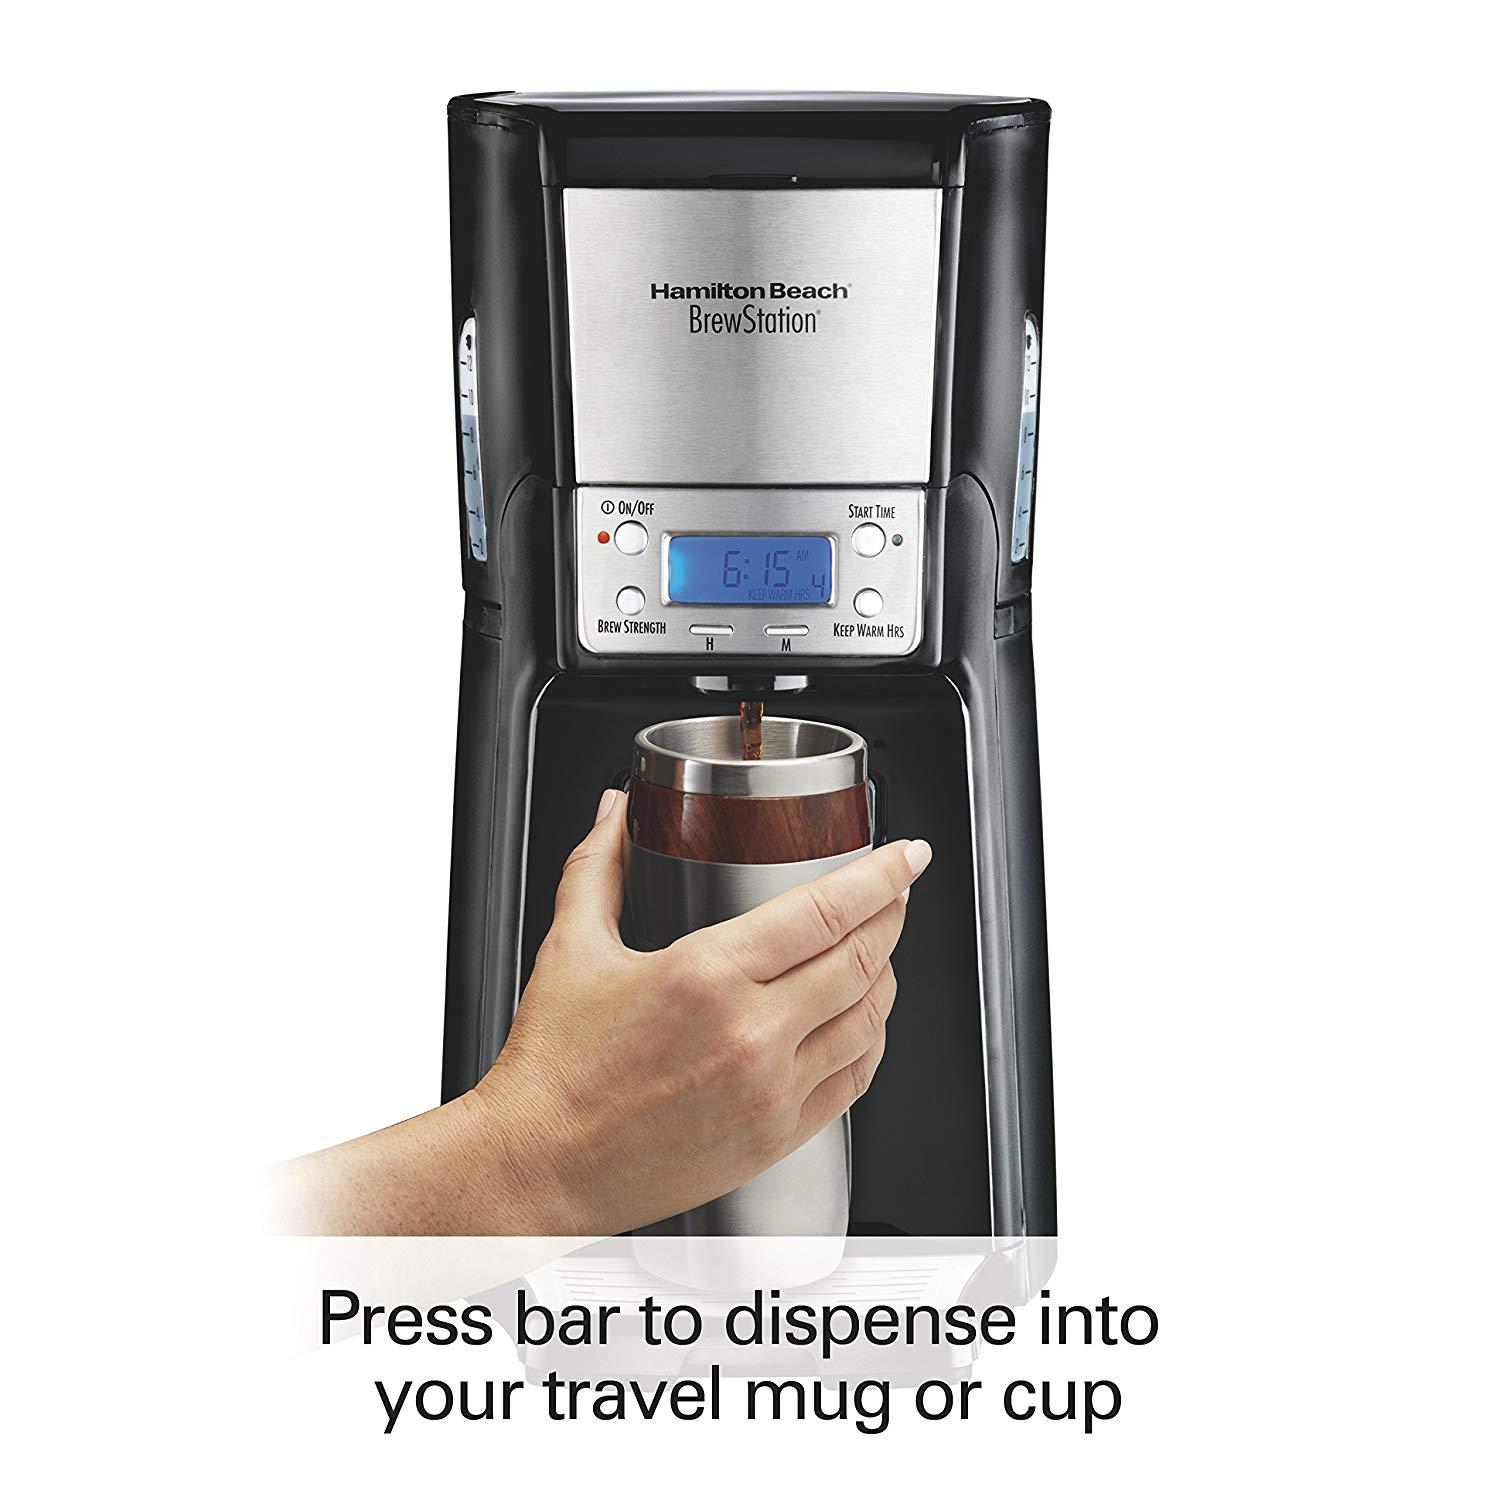 Hamilton beach brewstation 12 cup coffee maker